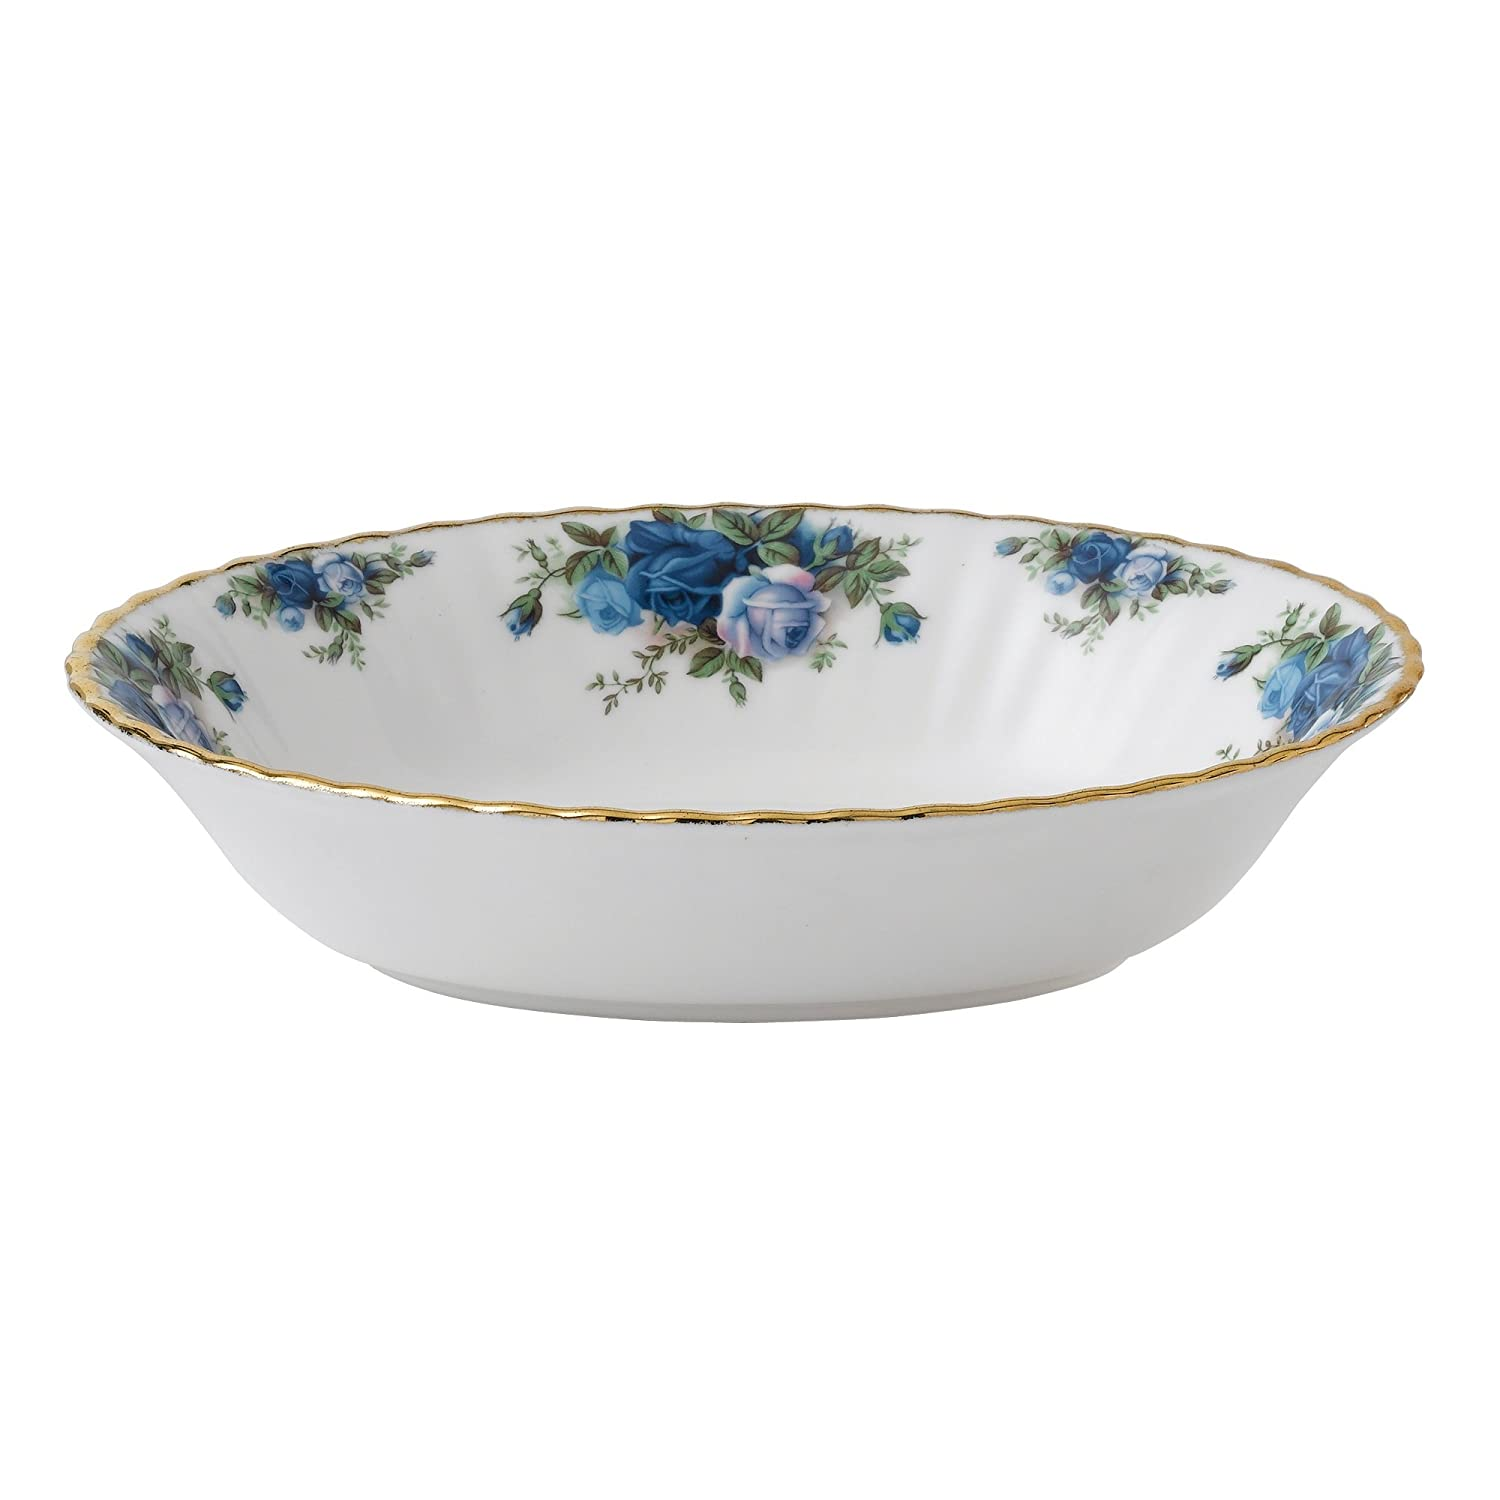 Royal Albert Moonlight Rose 32-ounce Open Vegetable Dish 15185062 H8-XFVS-S0QL